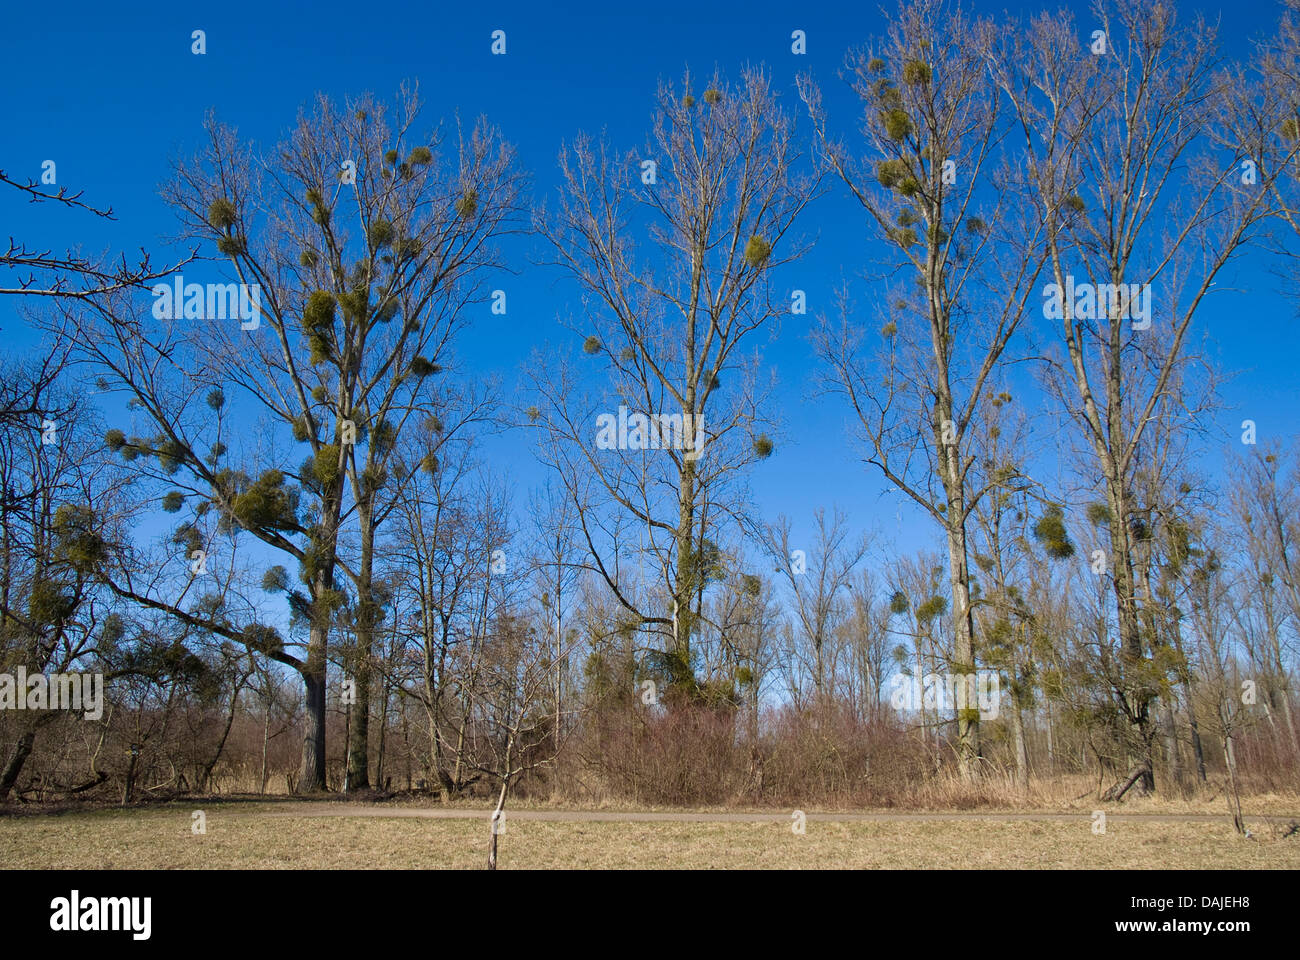 Canadian Poplar (Populus x canadensis), trees in winter with mistletoes, Visum album, Germany - Stock Image